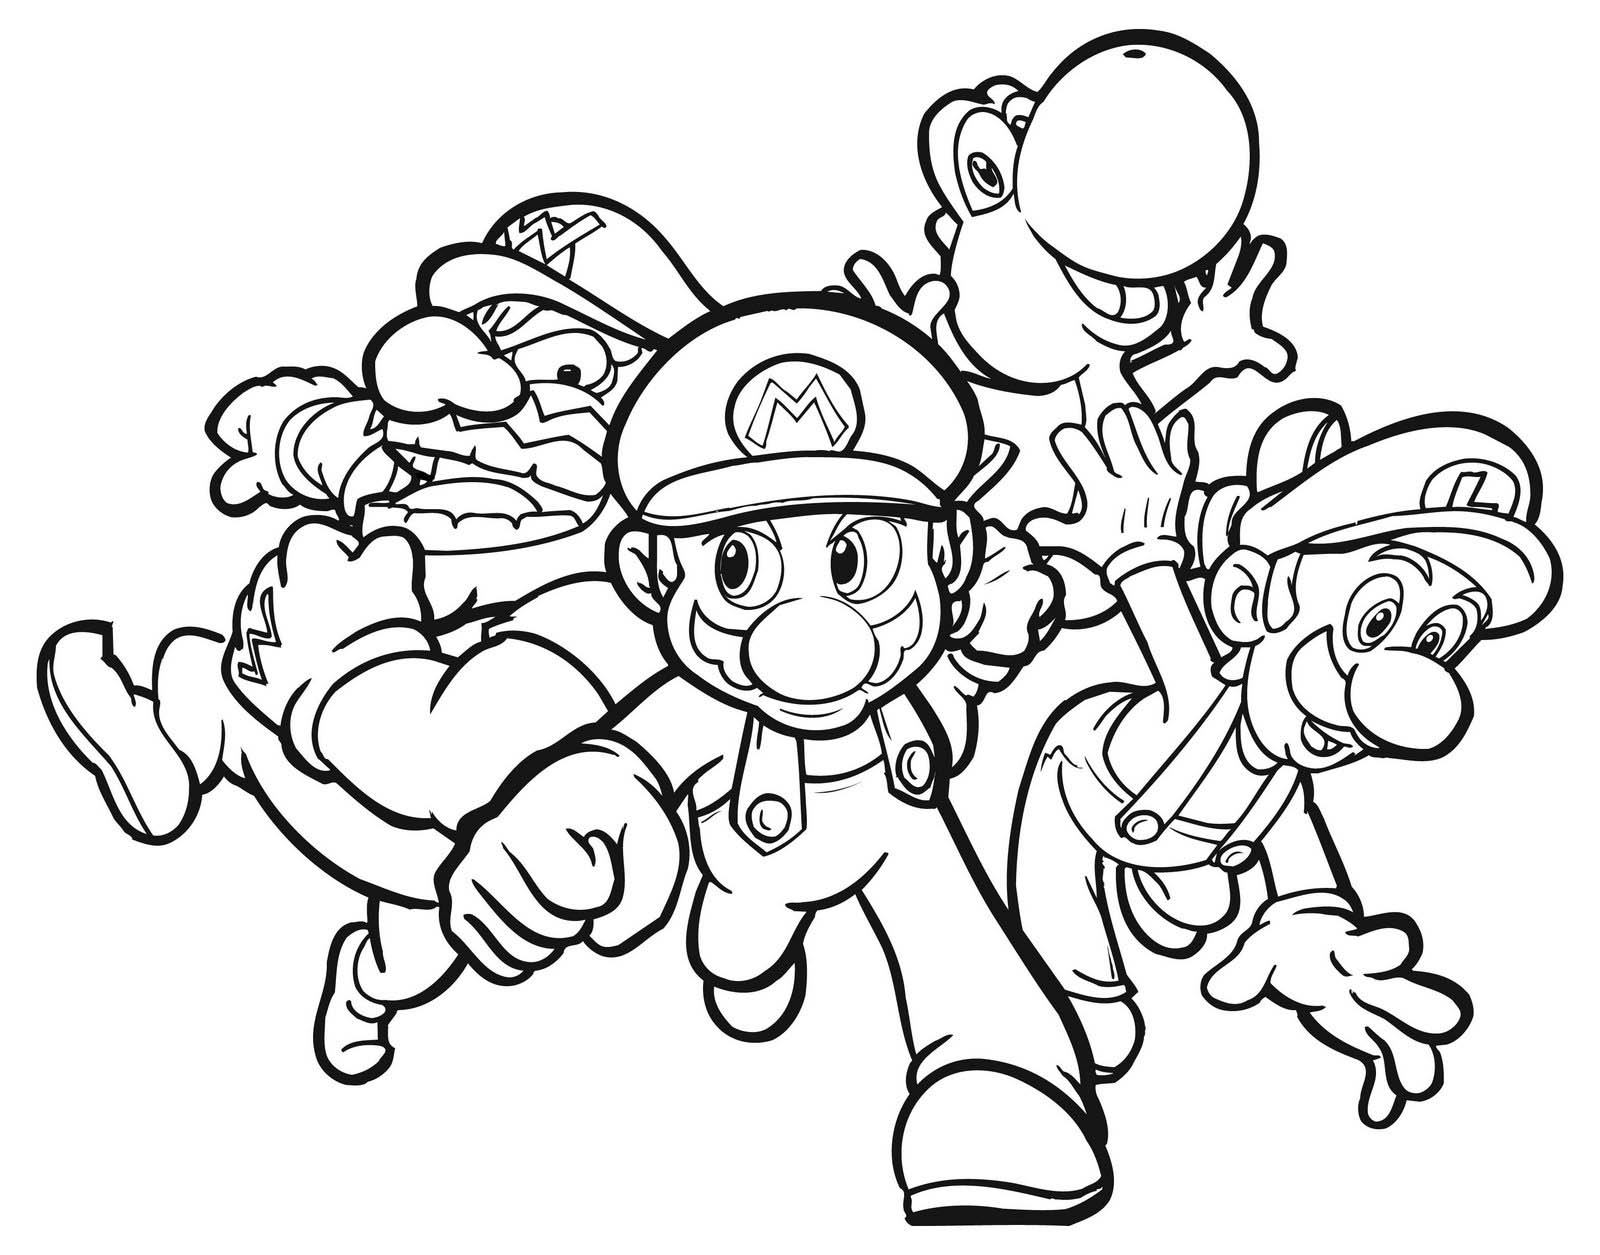 1600x1255 Paper Mario And Luigi Coloring Page Free Printable Pages